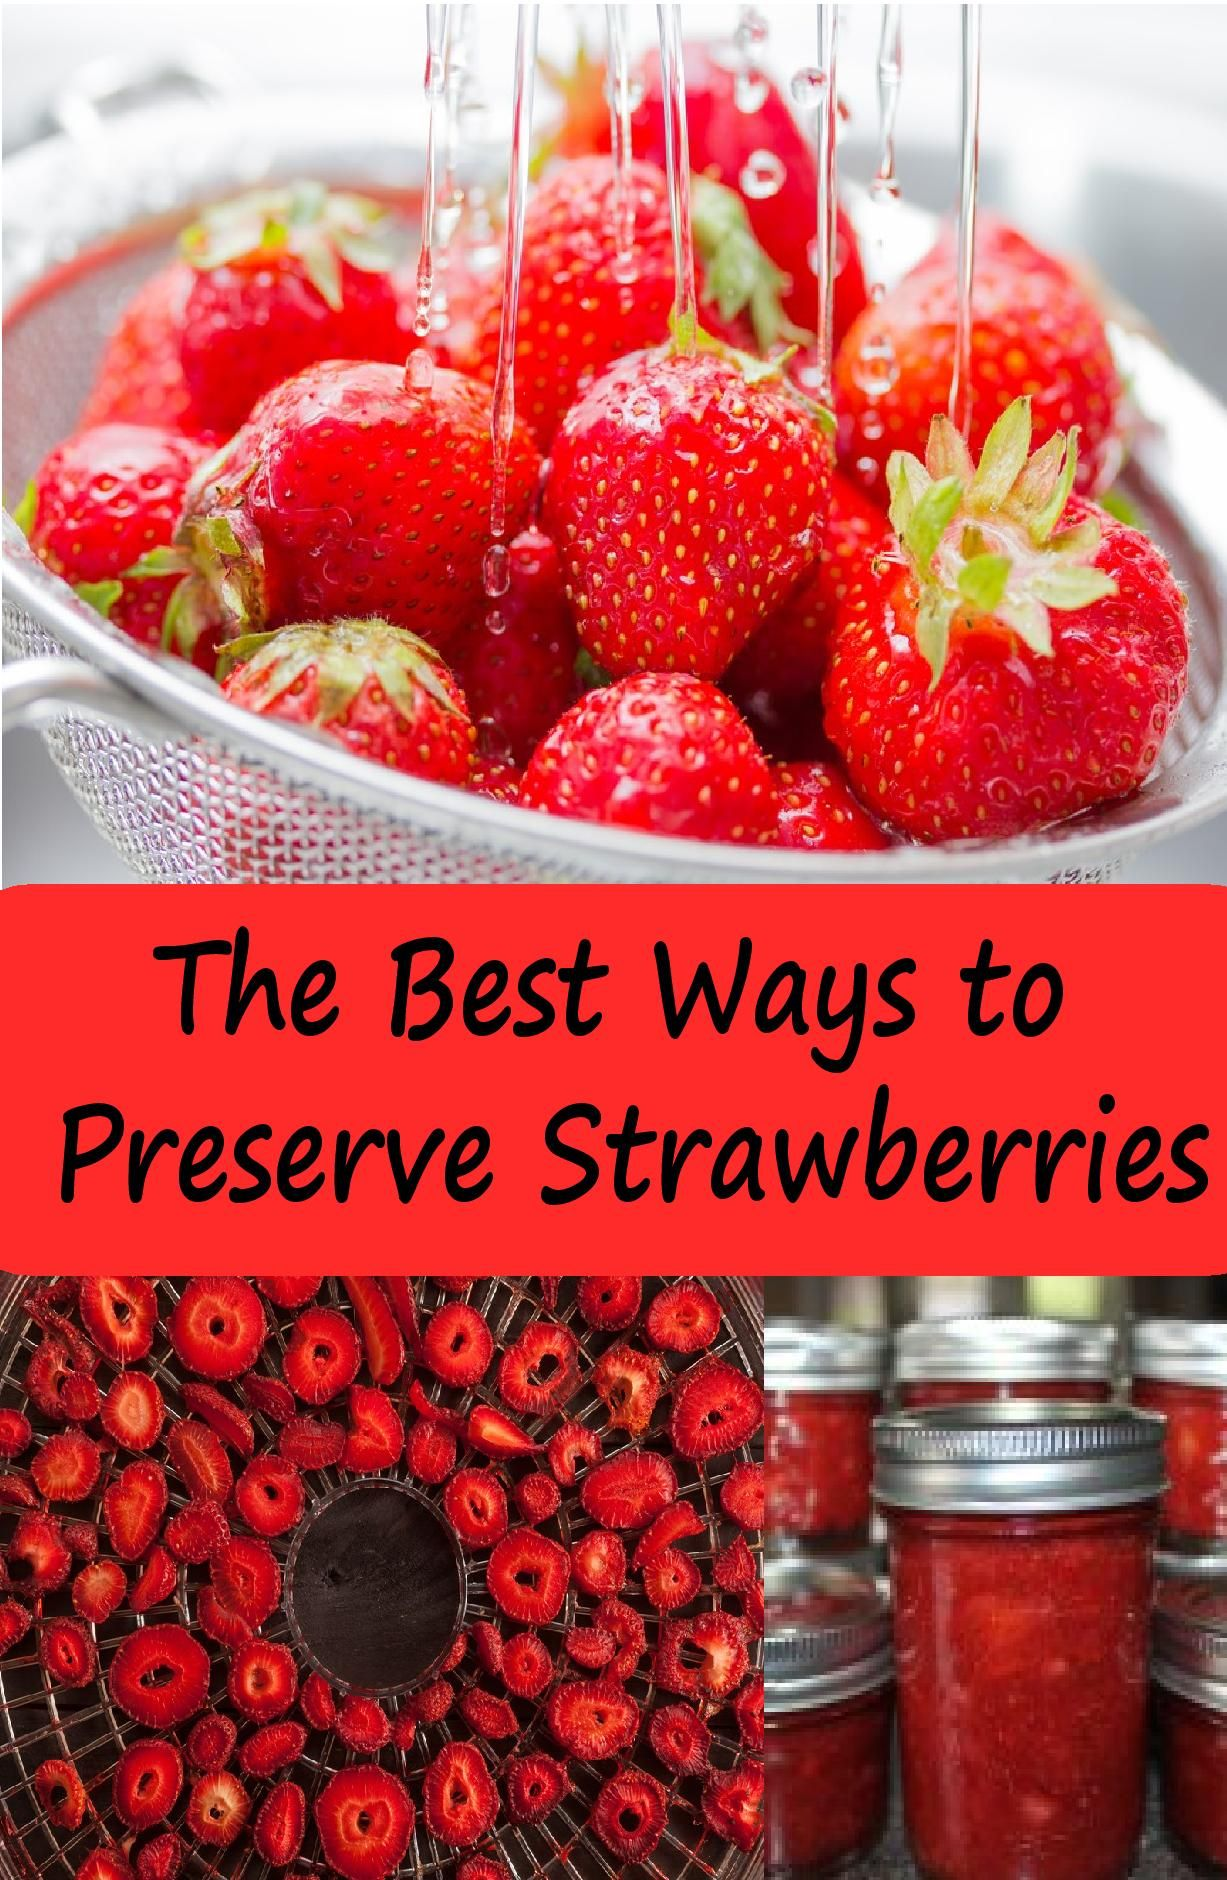 How to Store Strawberries at Home: An Overview of Ways and Recommendations